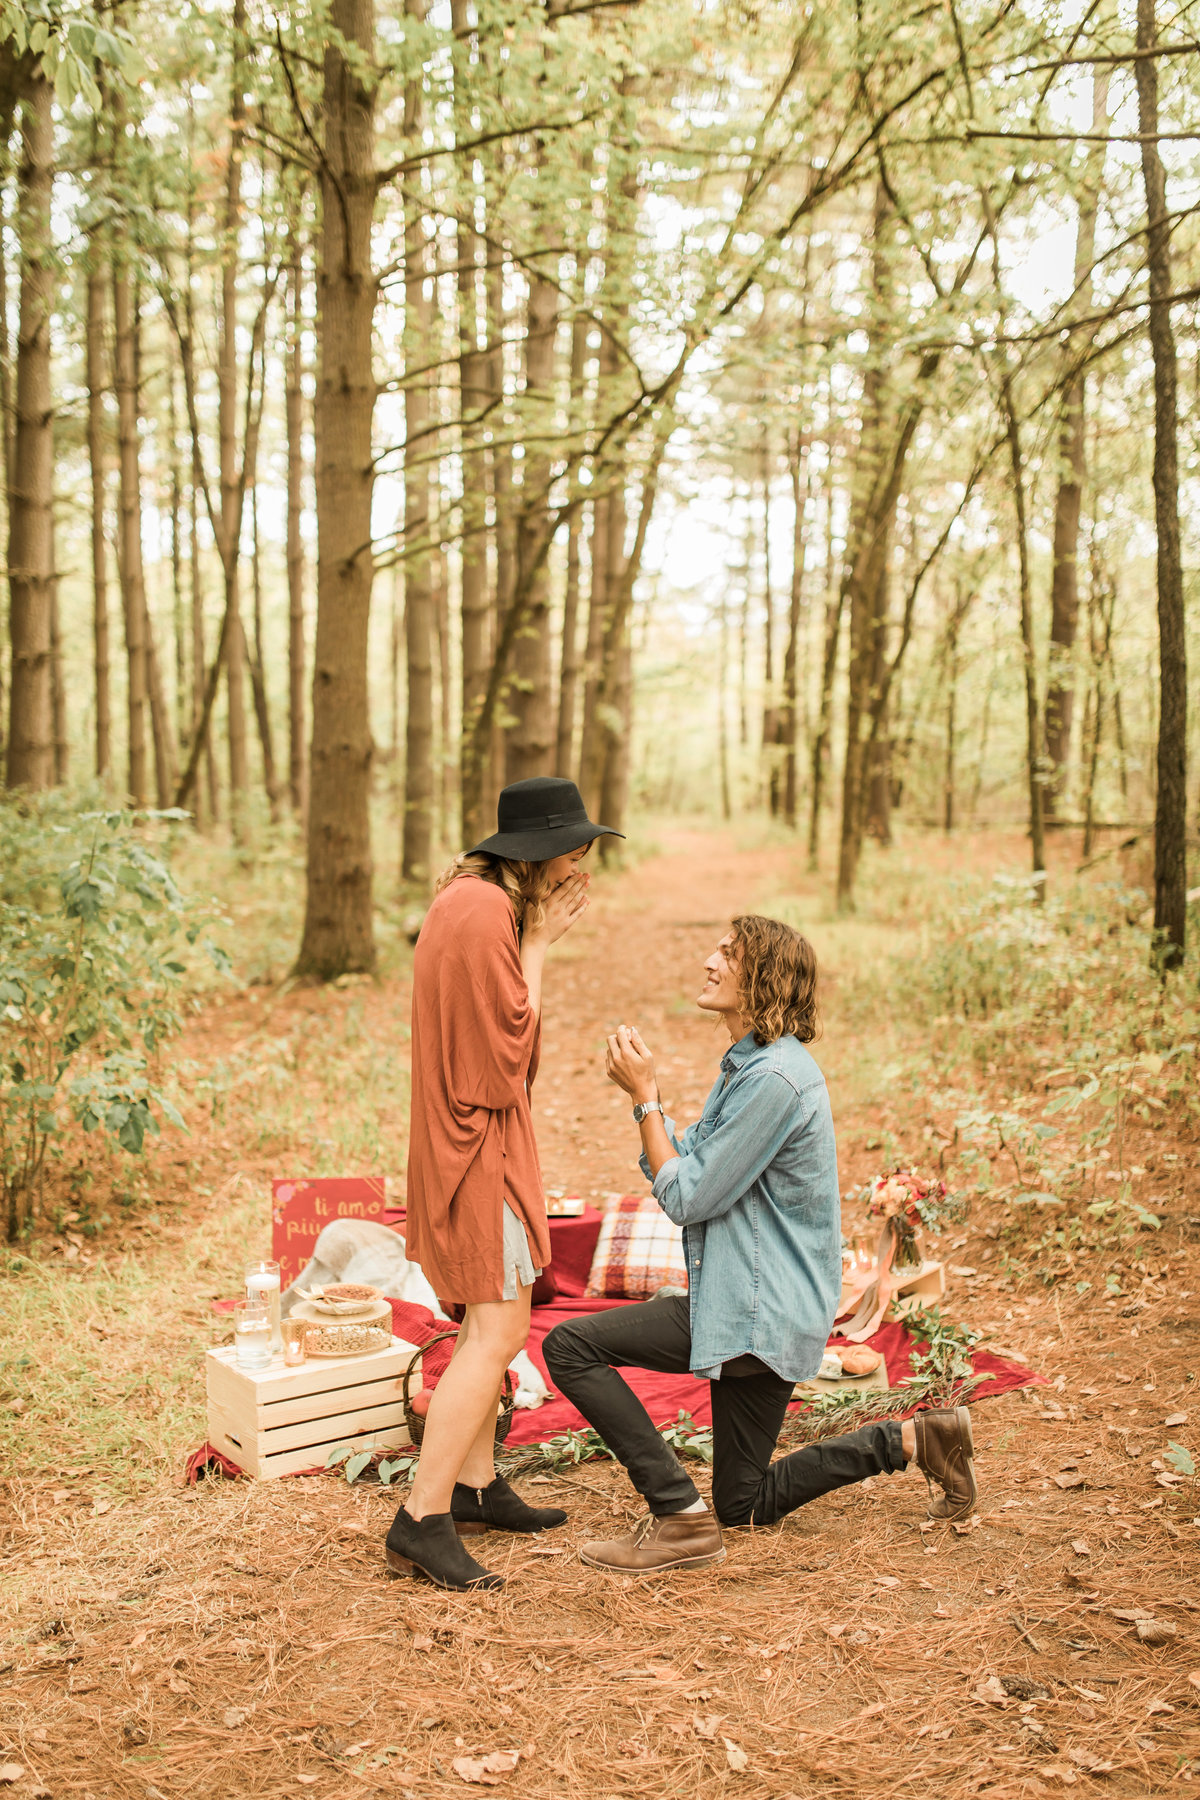 Busch Wildlife  Defiance, MO  Fall Picnic Colorado Themed Surpise Proposal  Cameron + Mikayla  Allison Slater Photography238